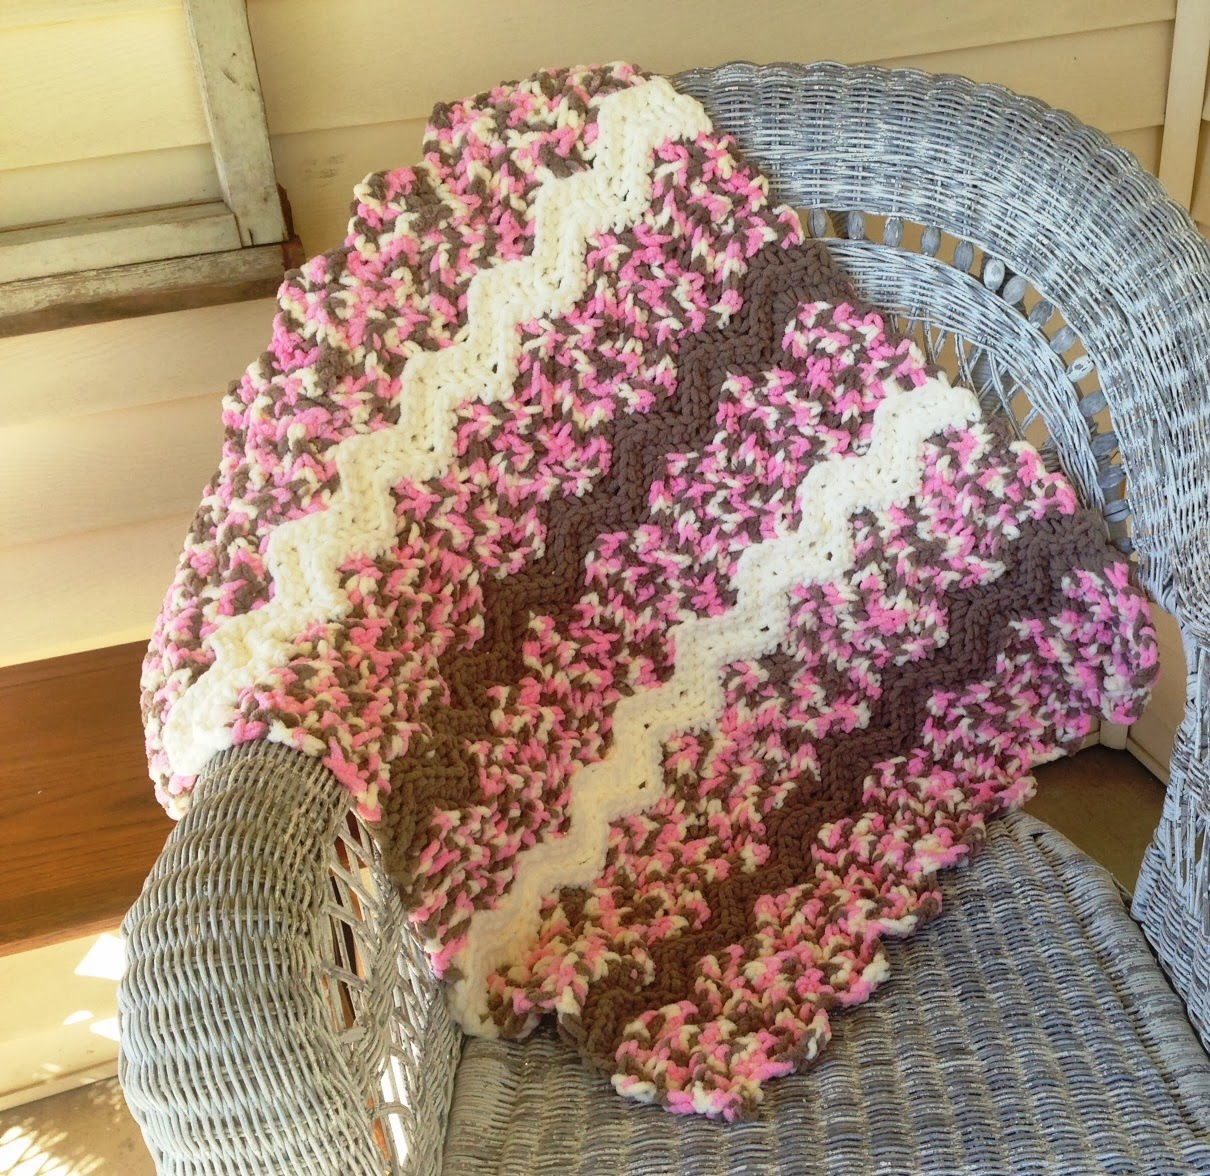 Crochet Patterns Bernat Blanket Yarn : New Crochet Bernat Baby Blanket Pattern The Kamden Ripple Blanket